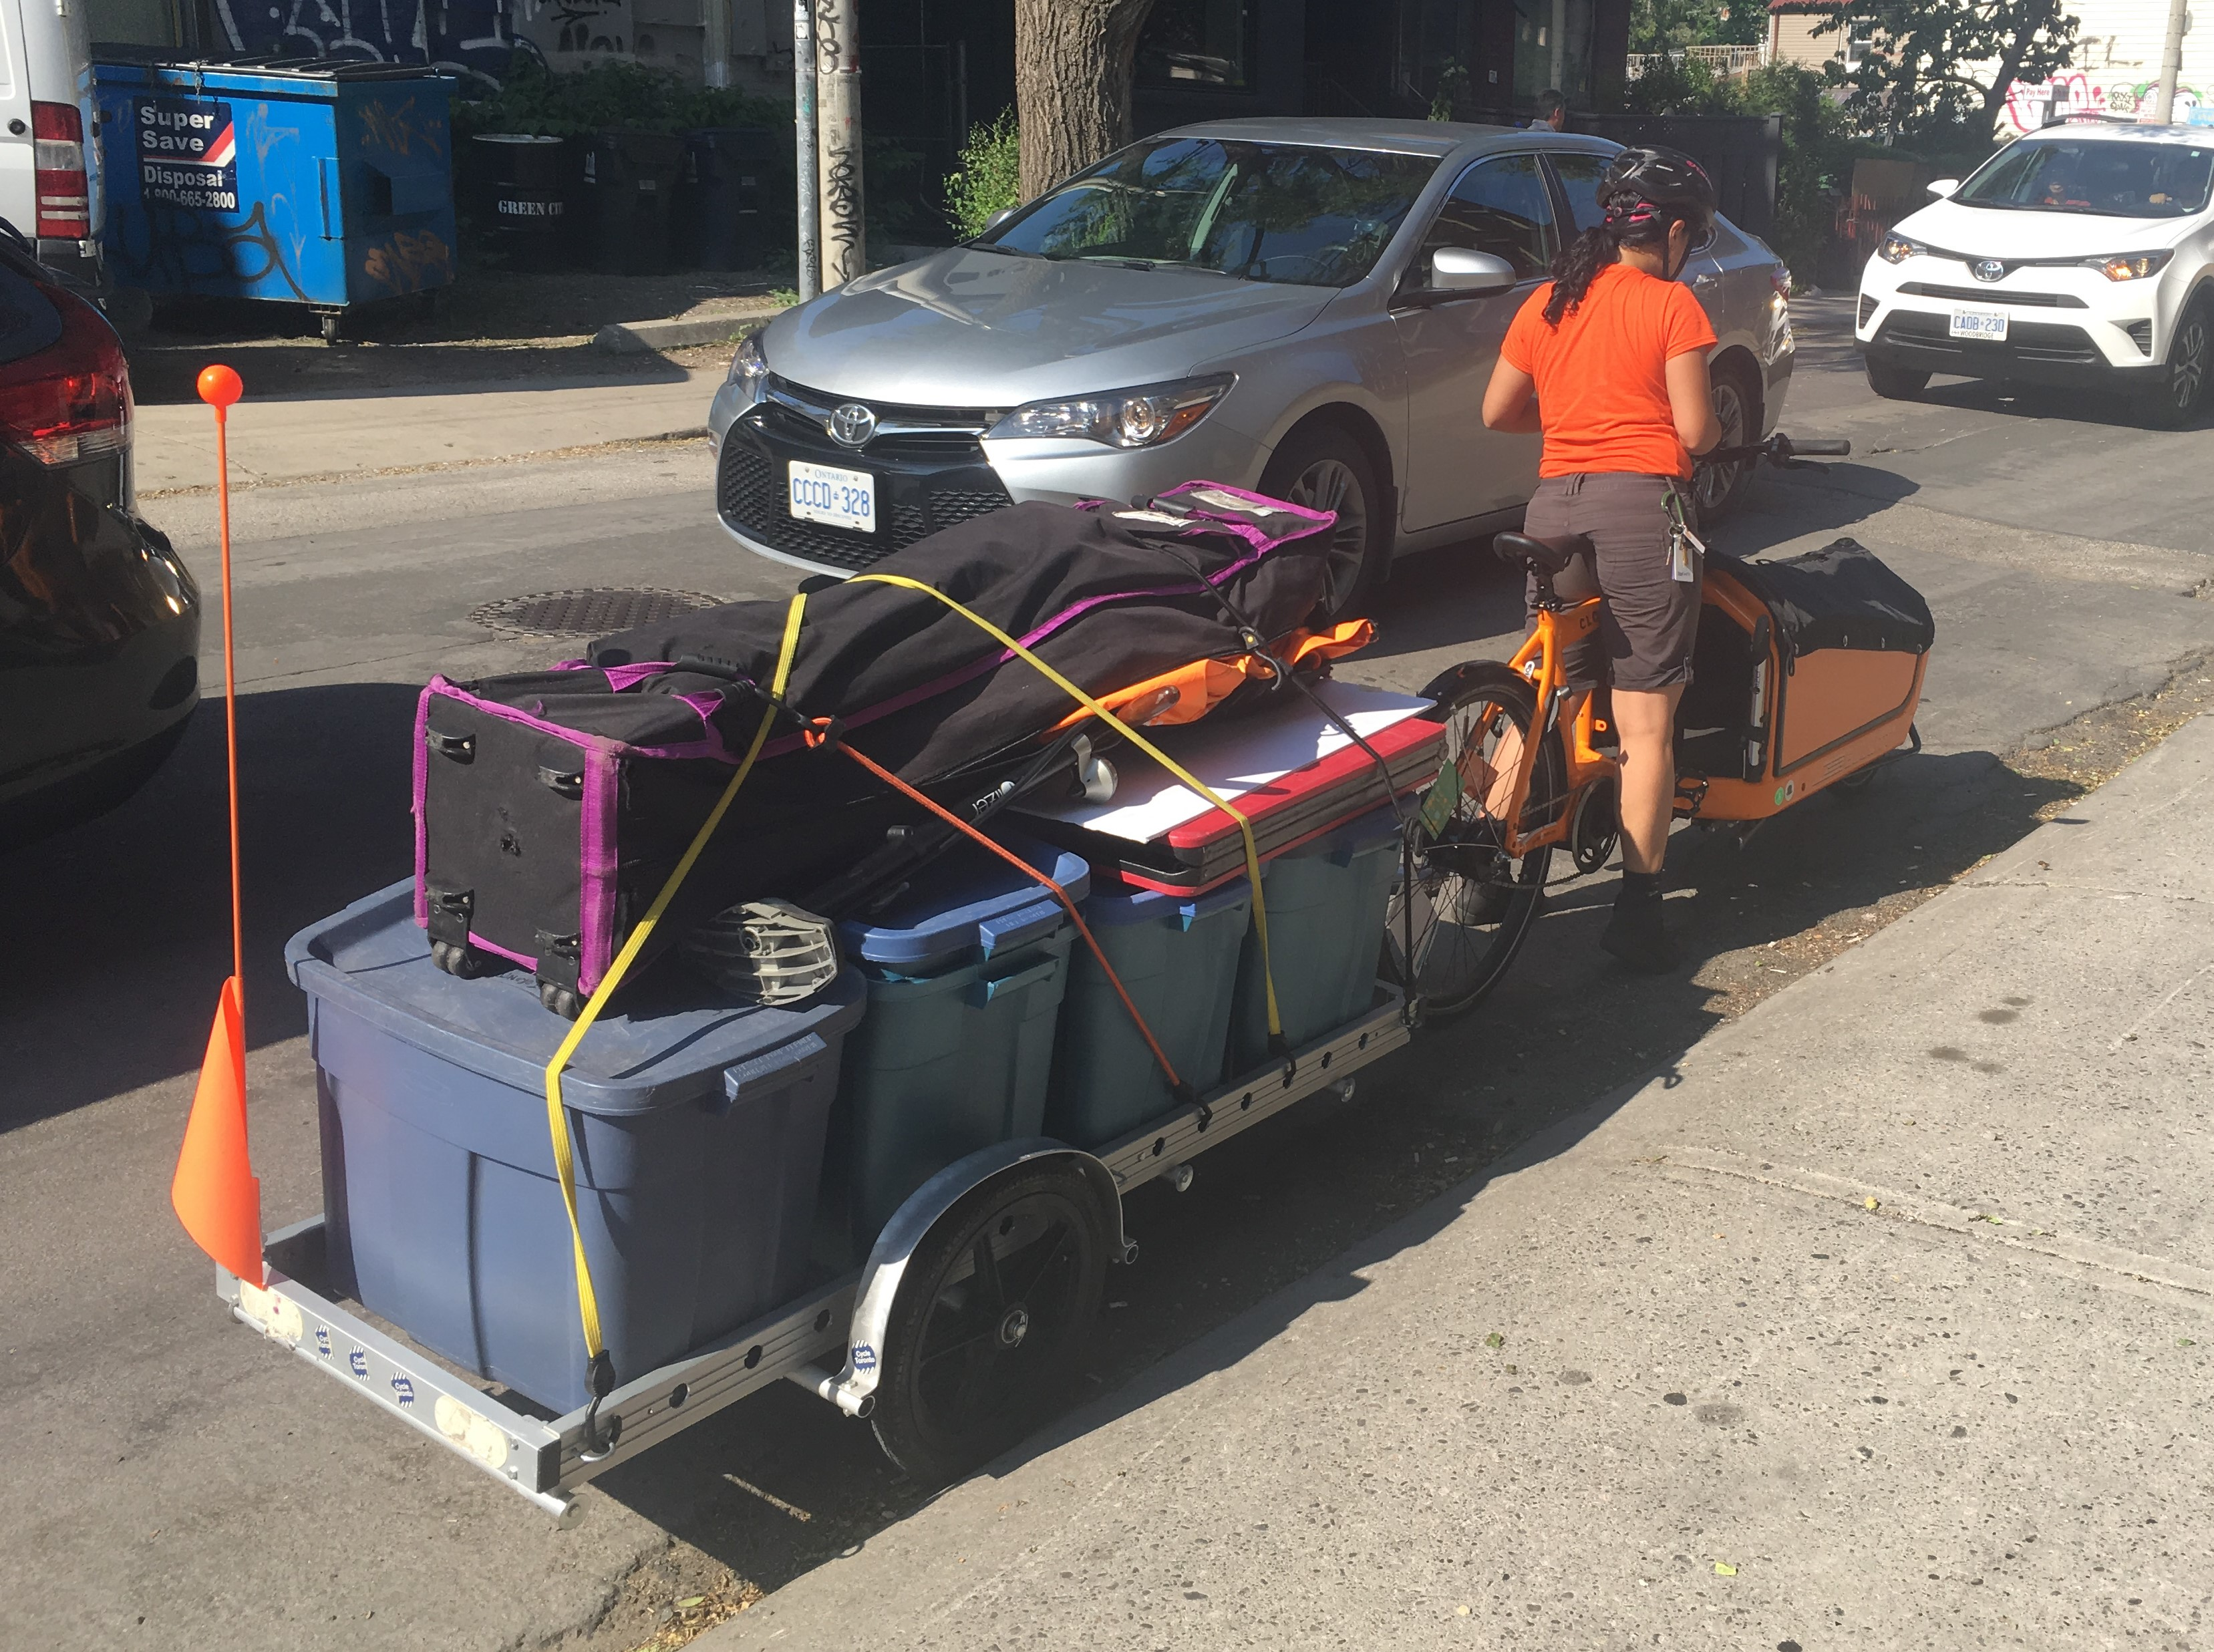 Cargo bike and trailer loaded up with several plastic crates